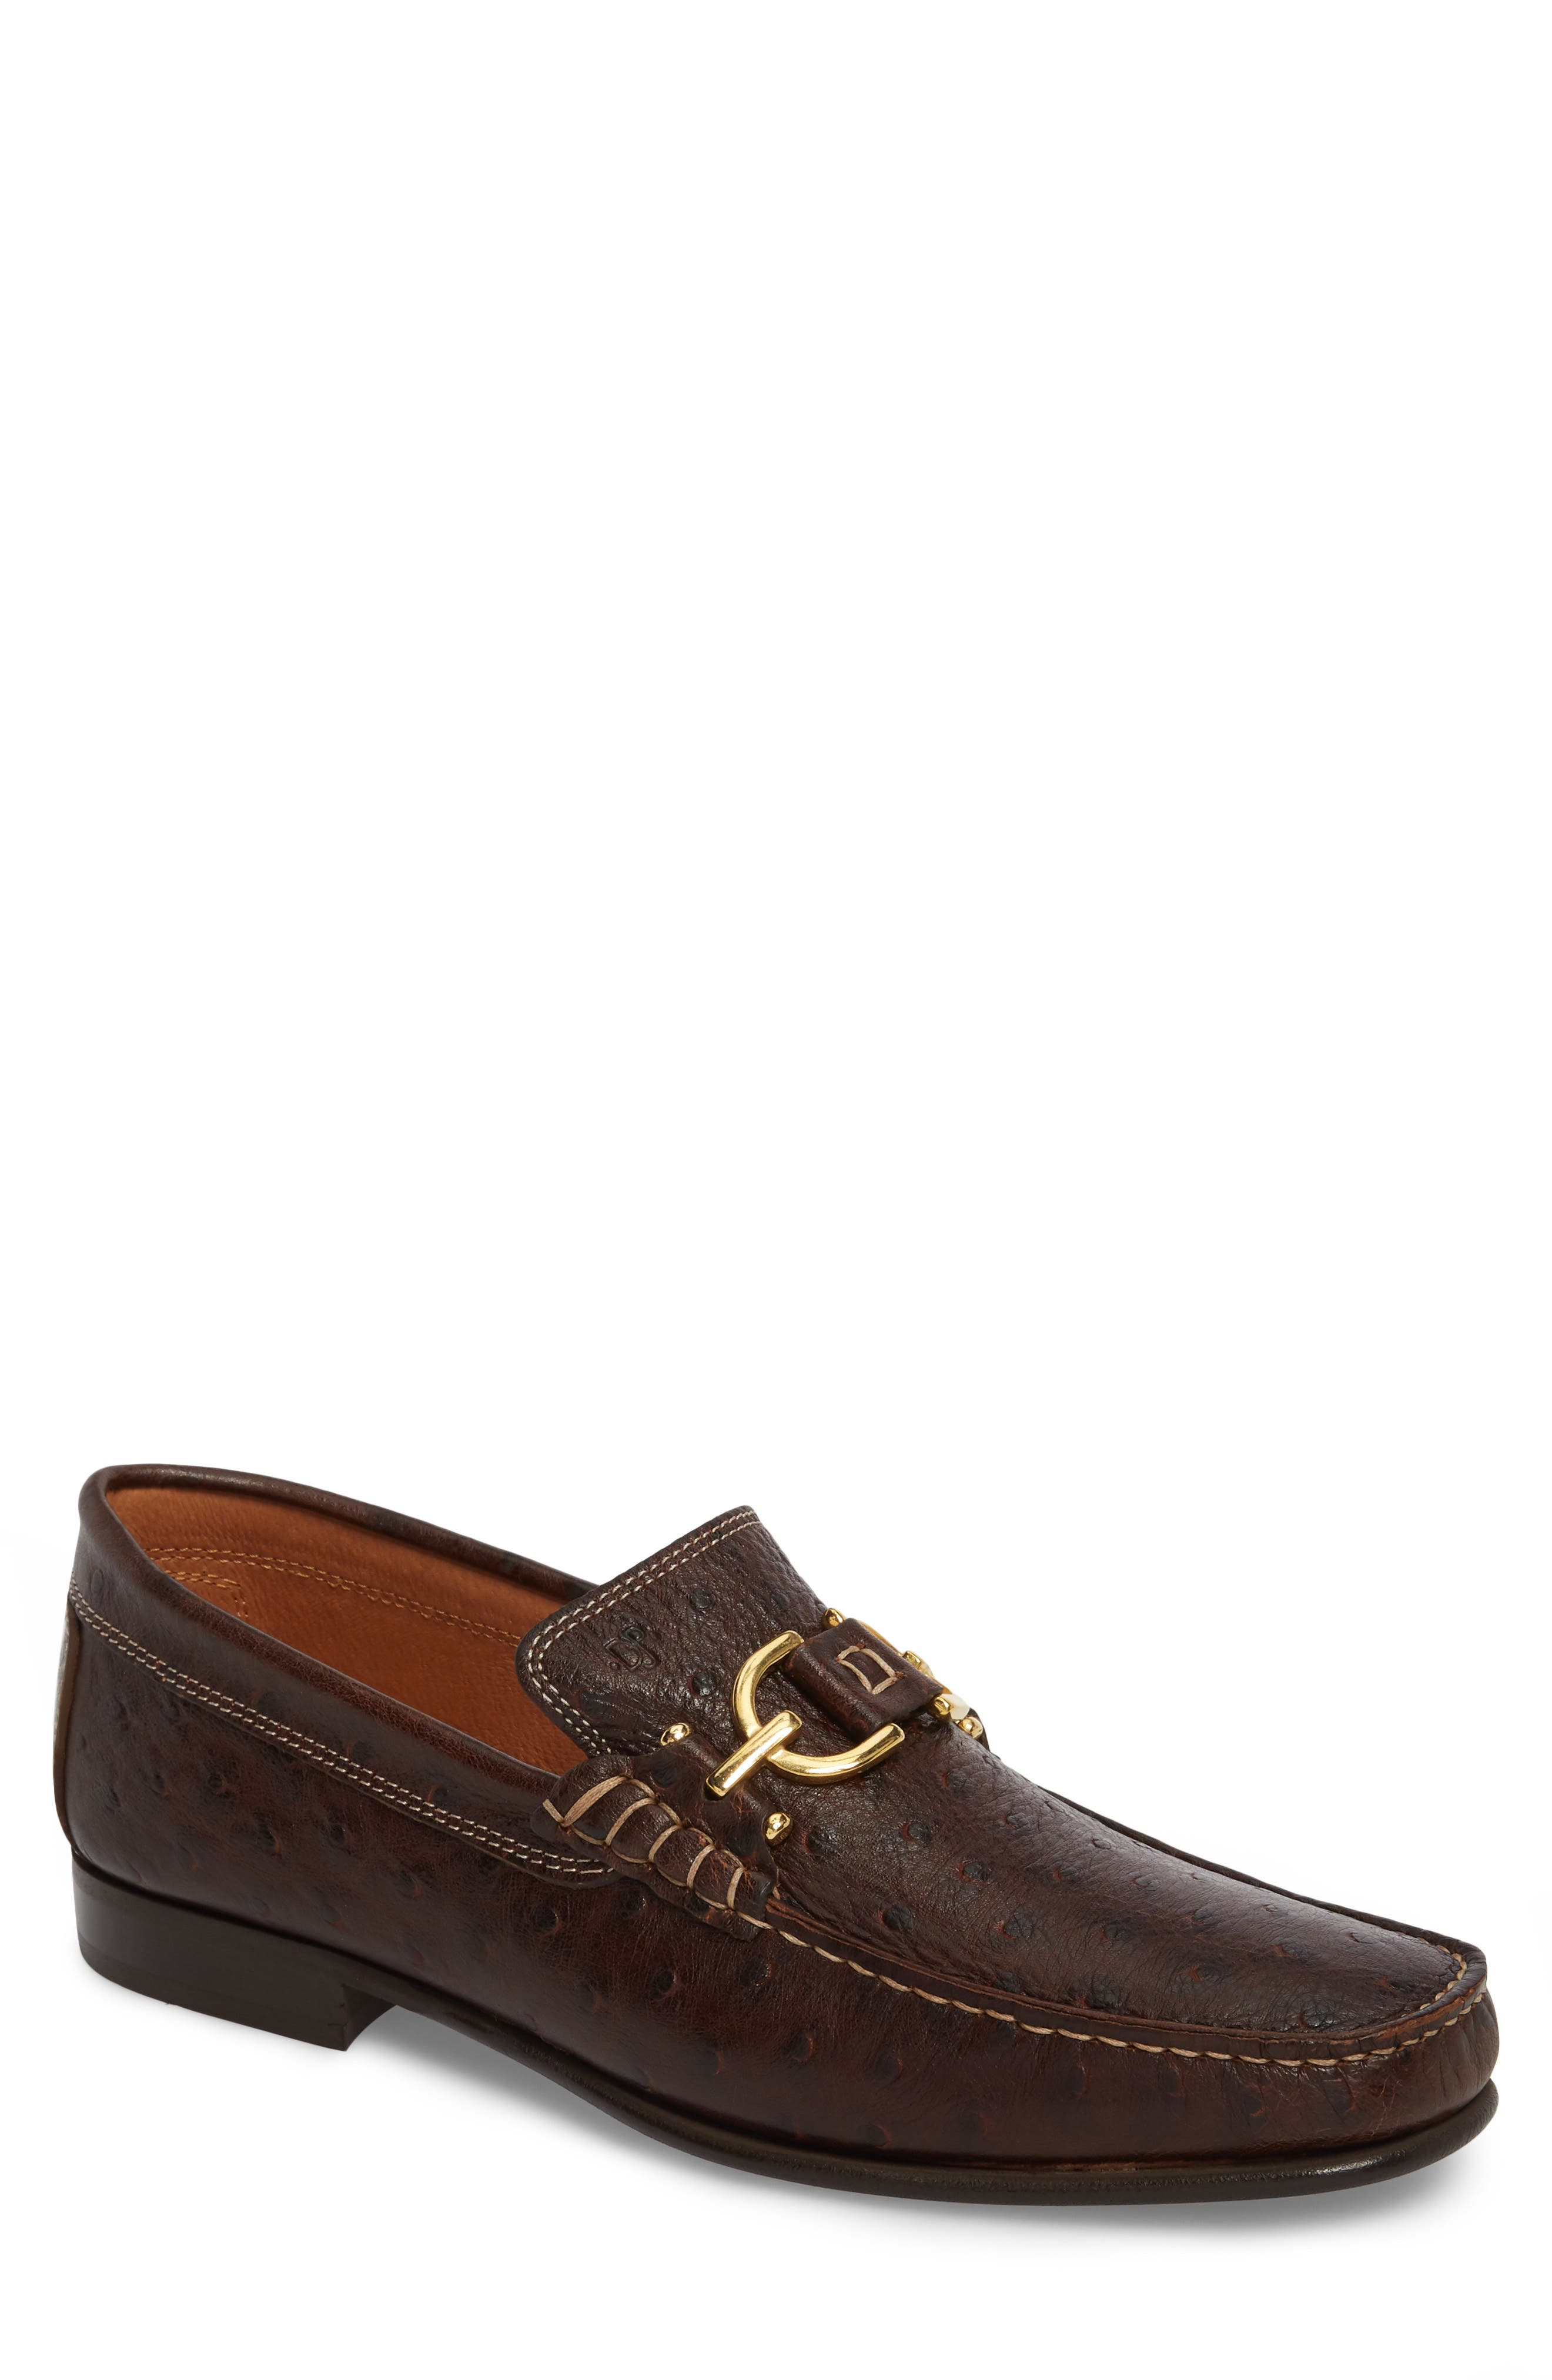 Dacio Square-Toe Loafer,                         Main,                         color, BROWN LEATHER